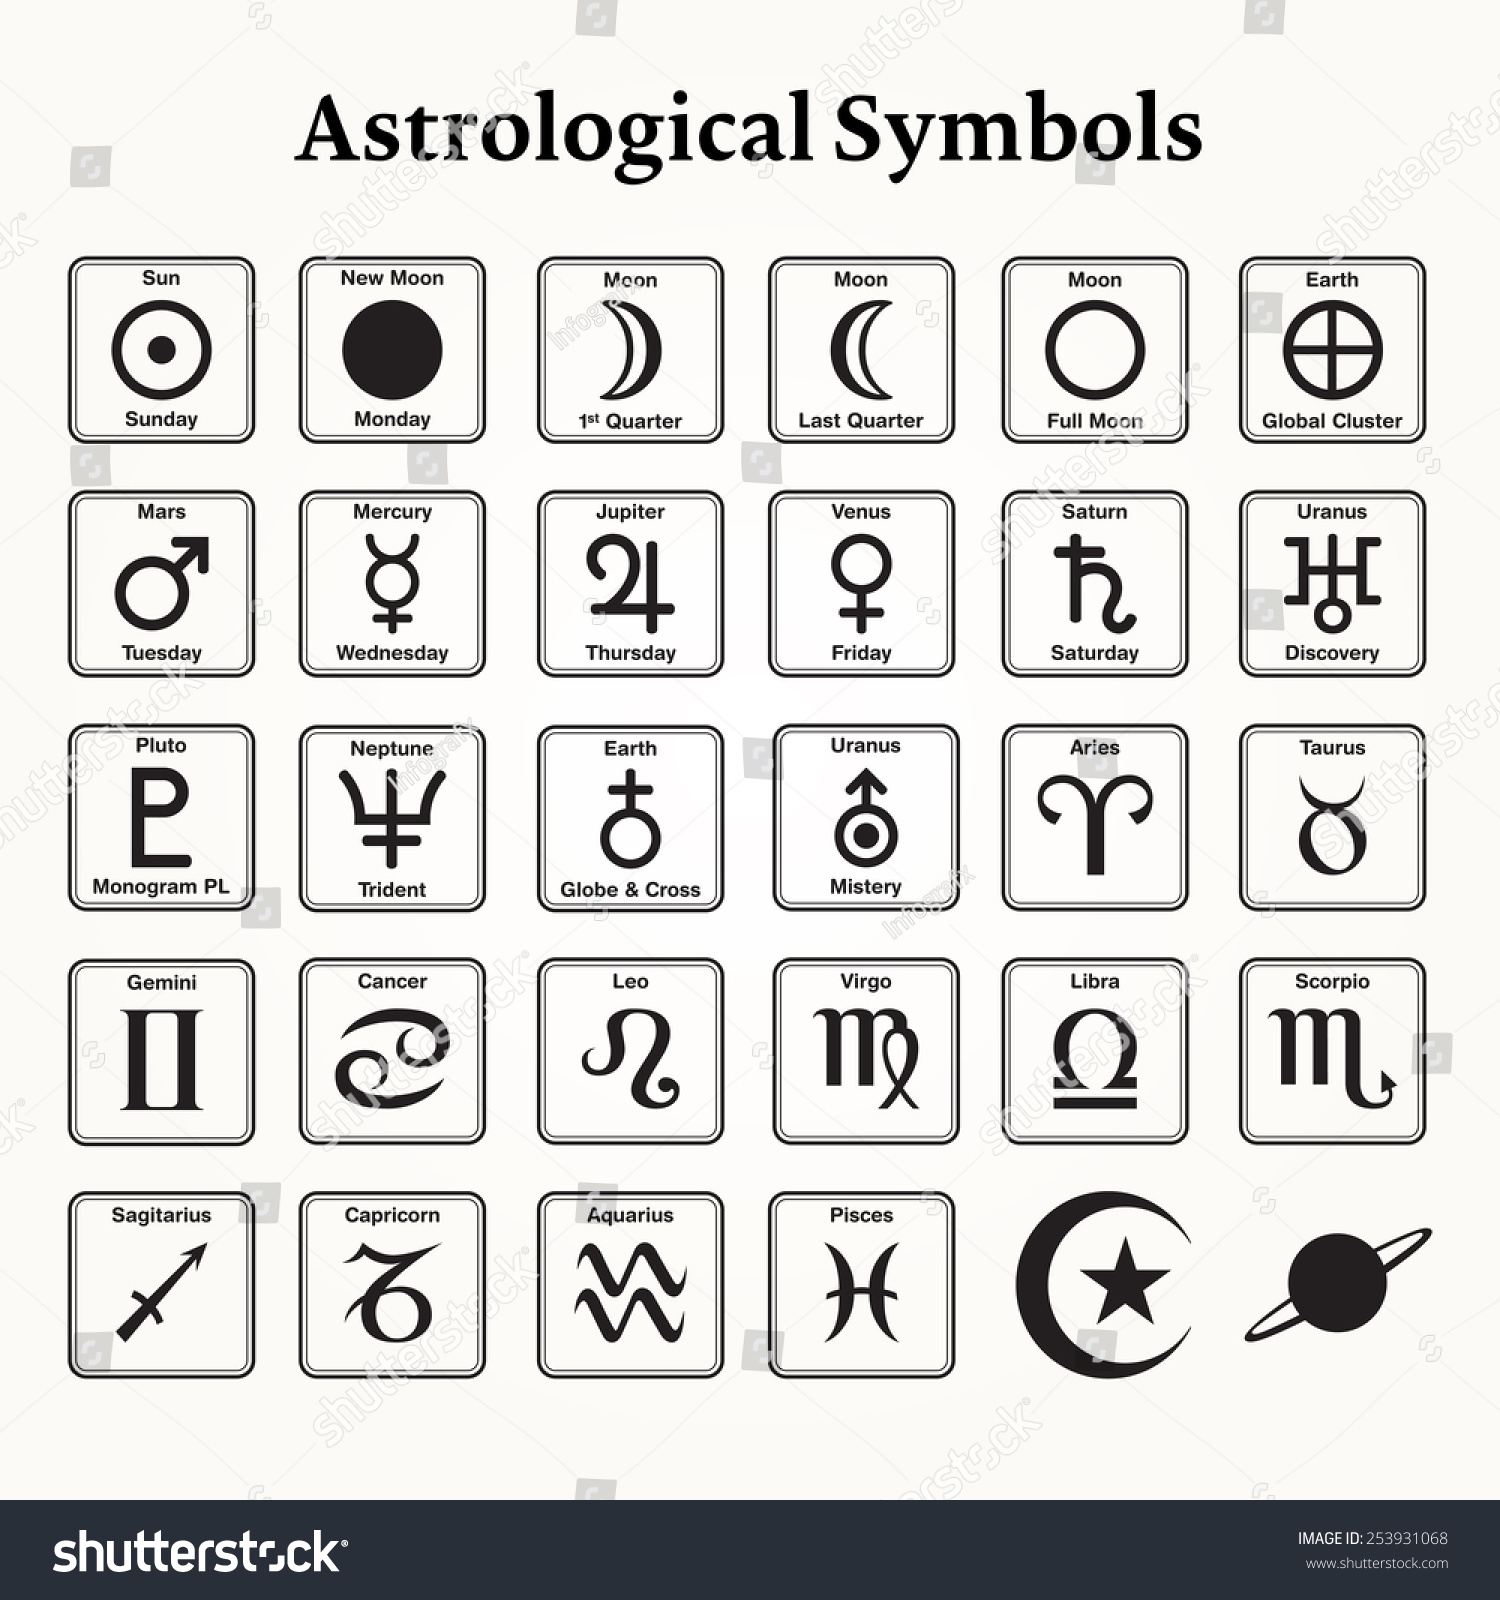 What is plutos symbol images symbol and sign ideas earth astronomical symbol gallery symbol and sign ideas astrological symbol pluto astrological symbol buycottarizona buycottarizona buycottarizona